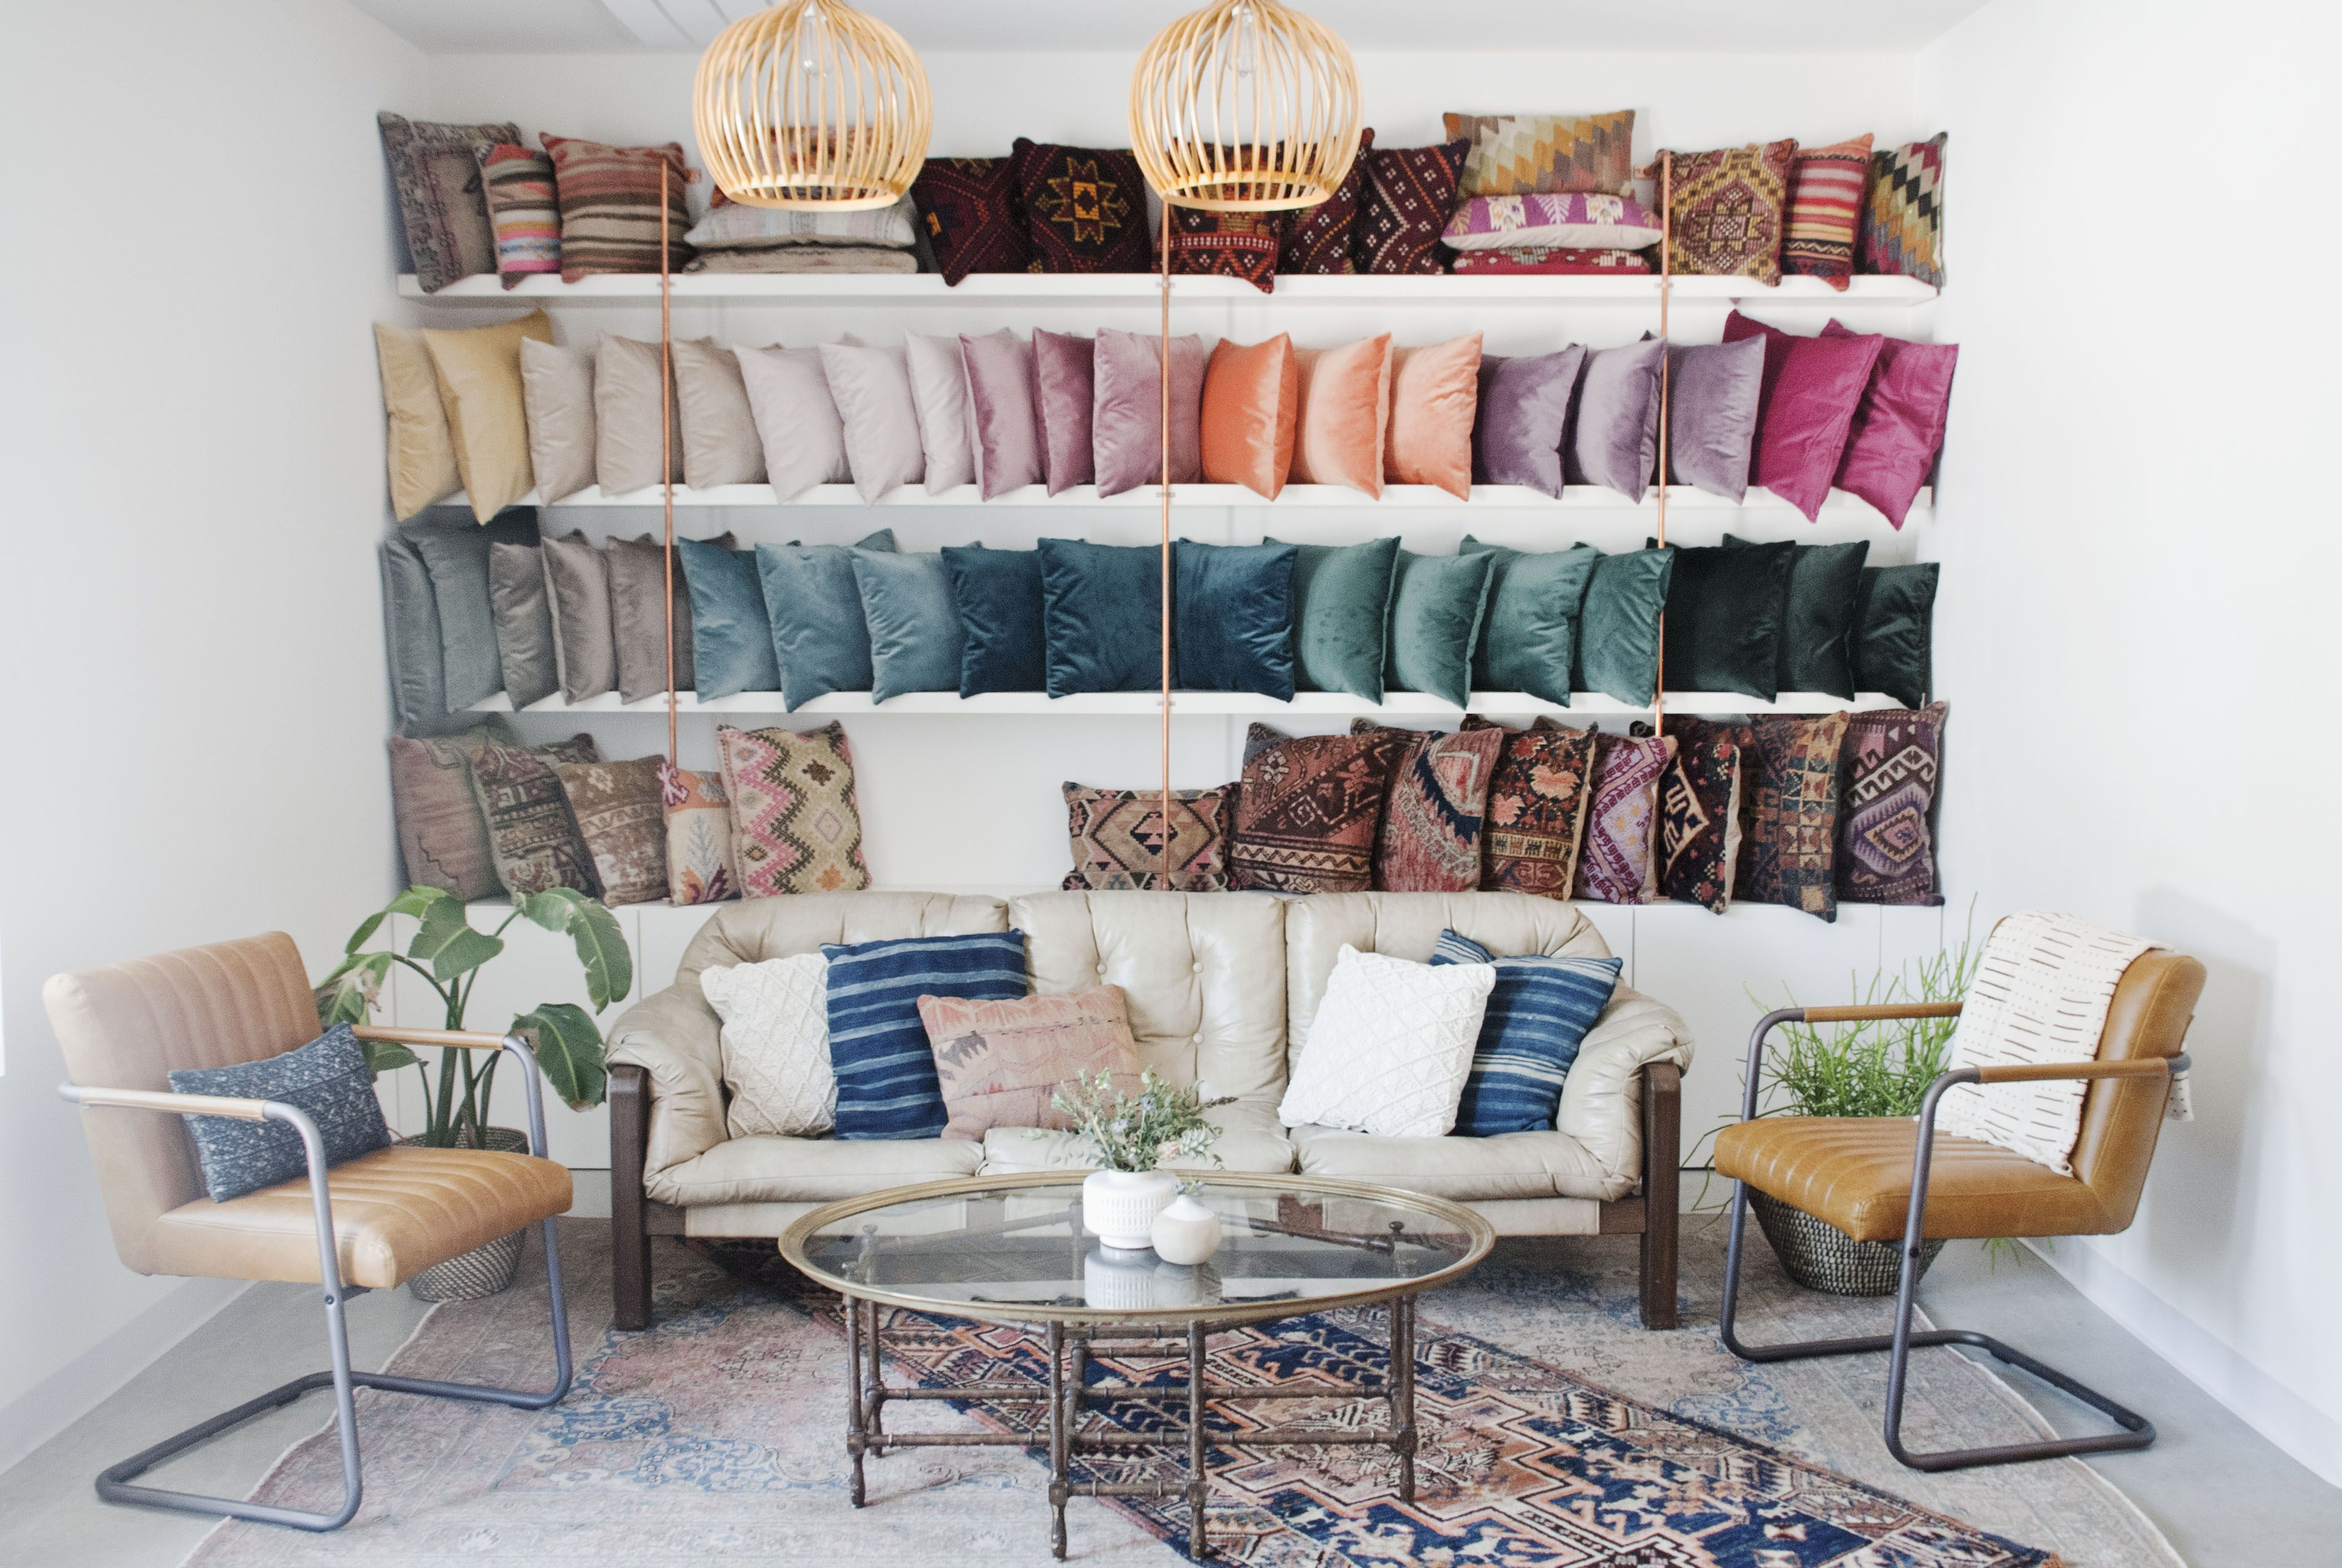 Rental Company Warehouse Showroom With A Pillow Wall And Neutral Leather Furniture Via Birch Brass Vintage Rent Furniture Showroom Furniture Trendy Furniture